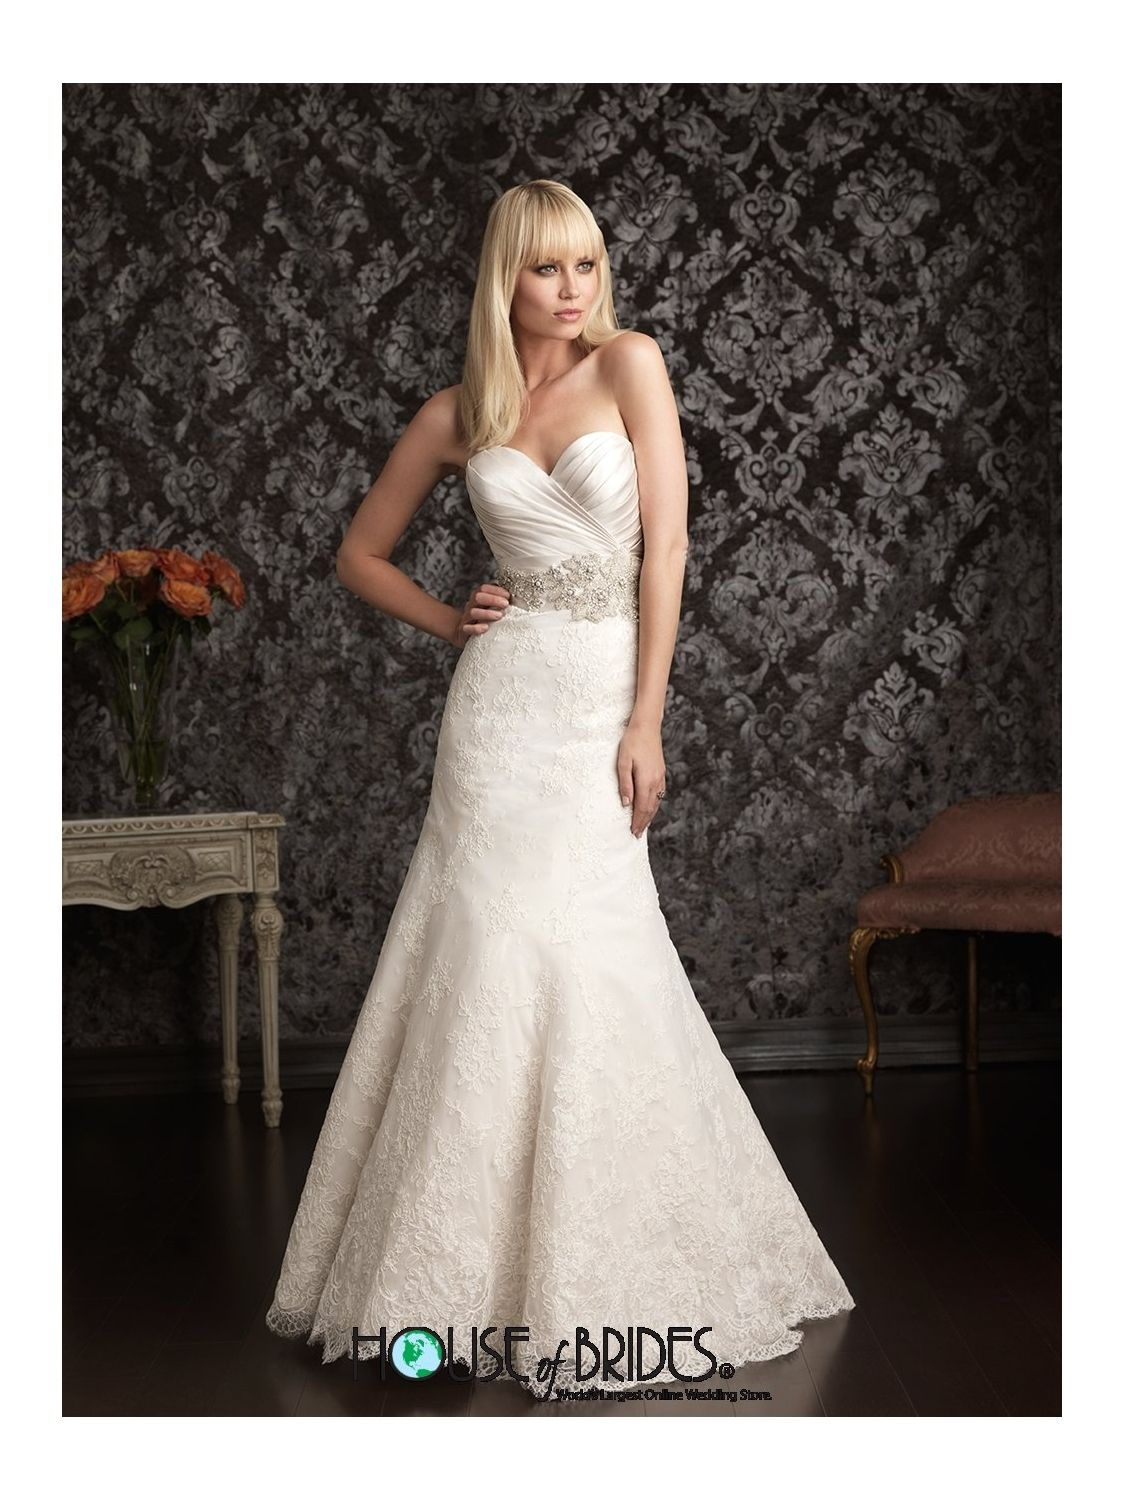 House of brides wedding dresses  Allure Bridals Wedding Dress Style  Stunning You could wear